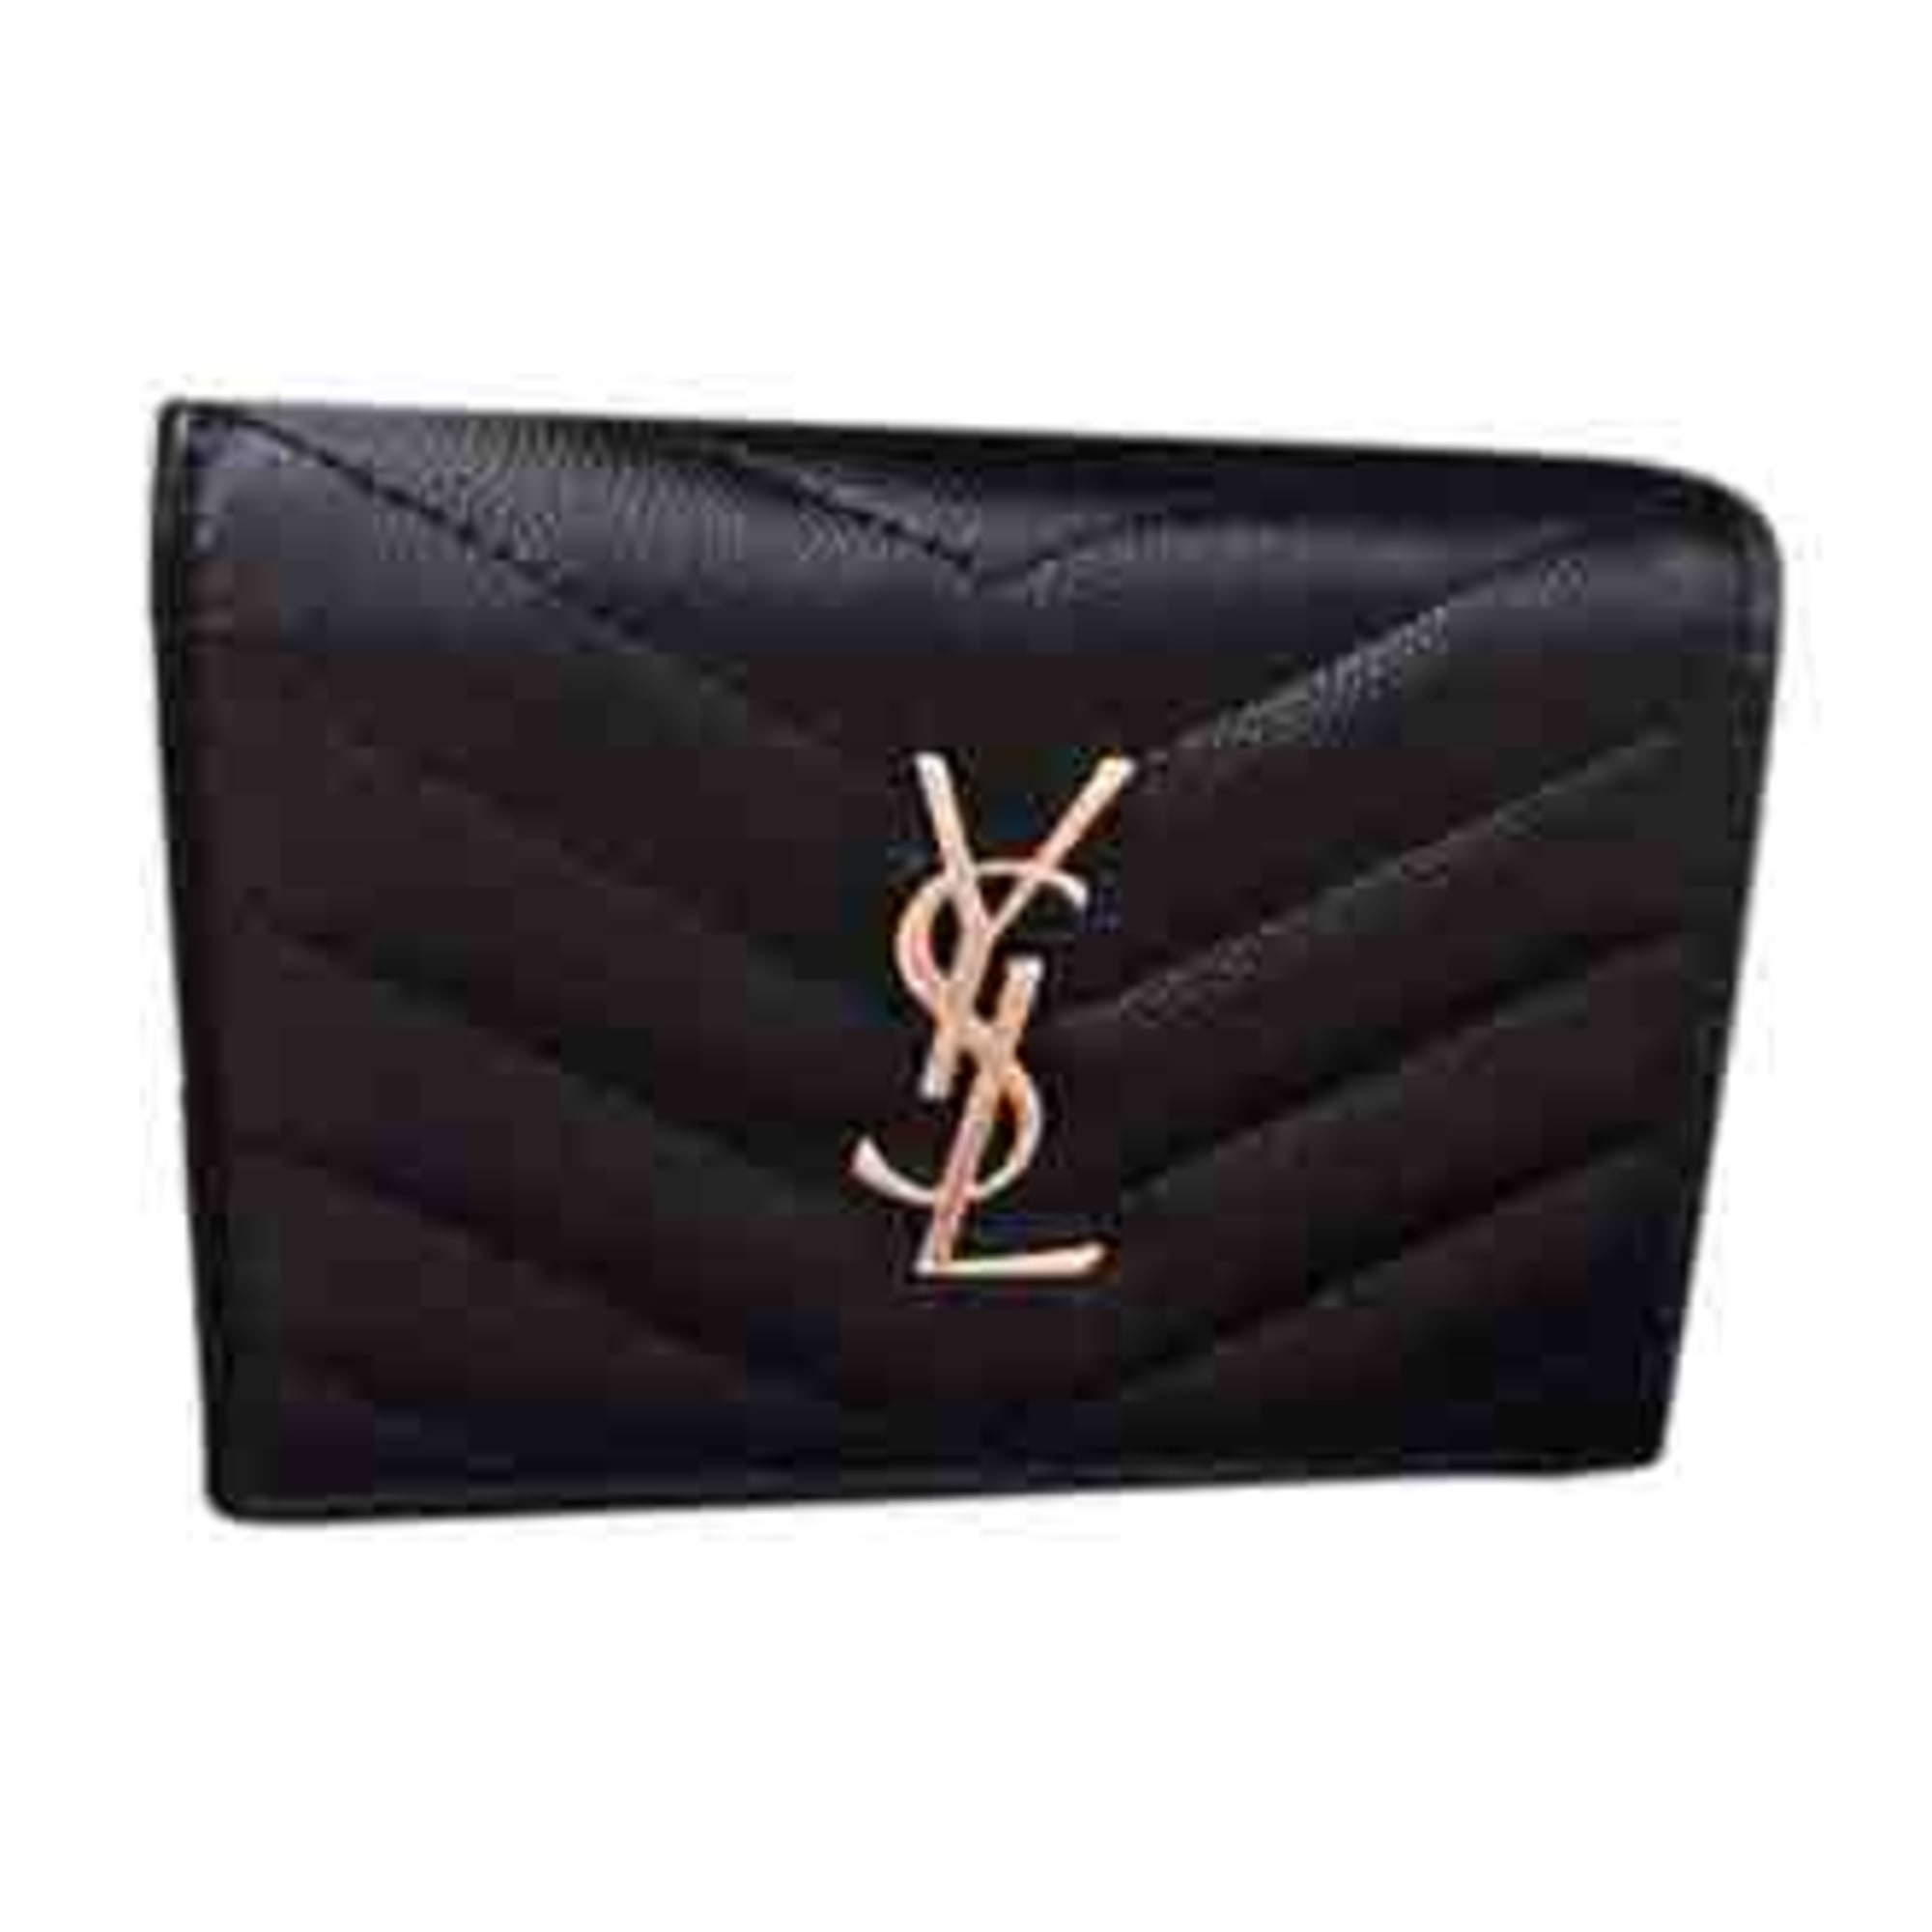 Borsellino YVES SAINT LAURENT Nero